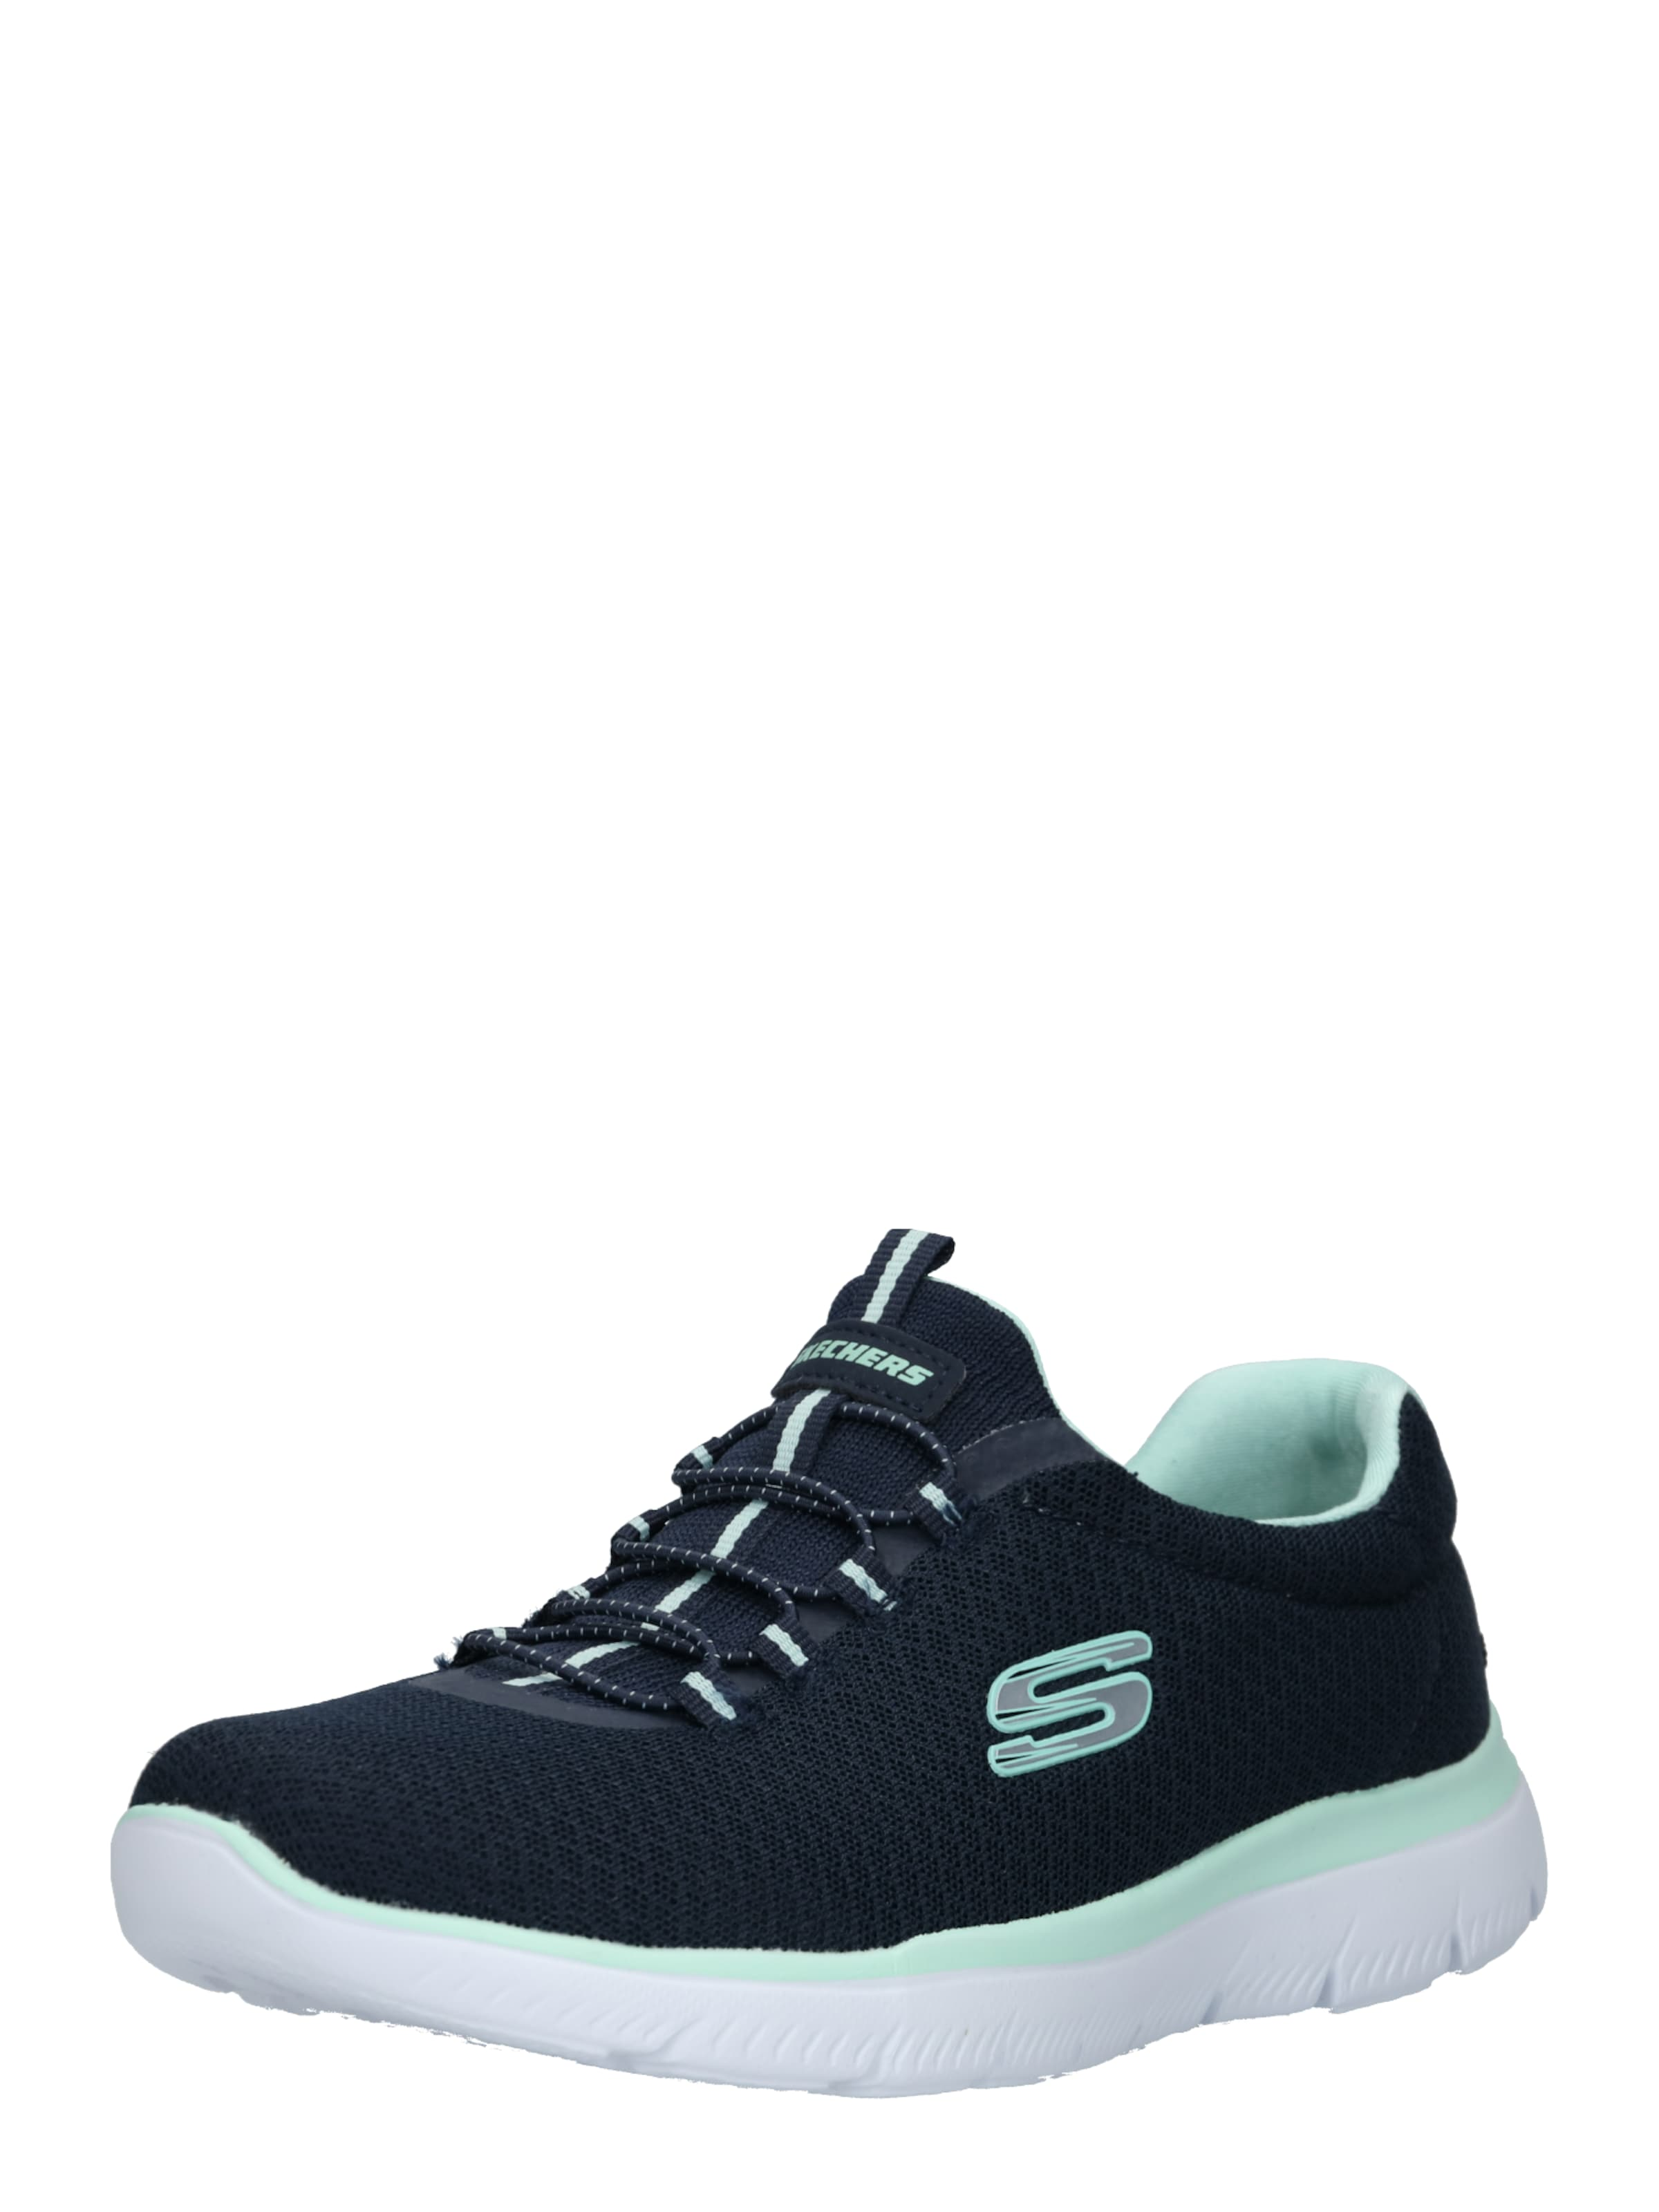 'summits' Navy Skechers Skechers Sneaker In 'summits' Navy In Sneaker HeYD29IWE